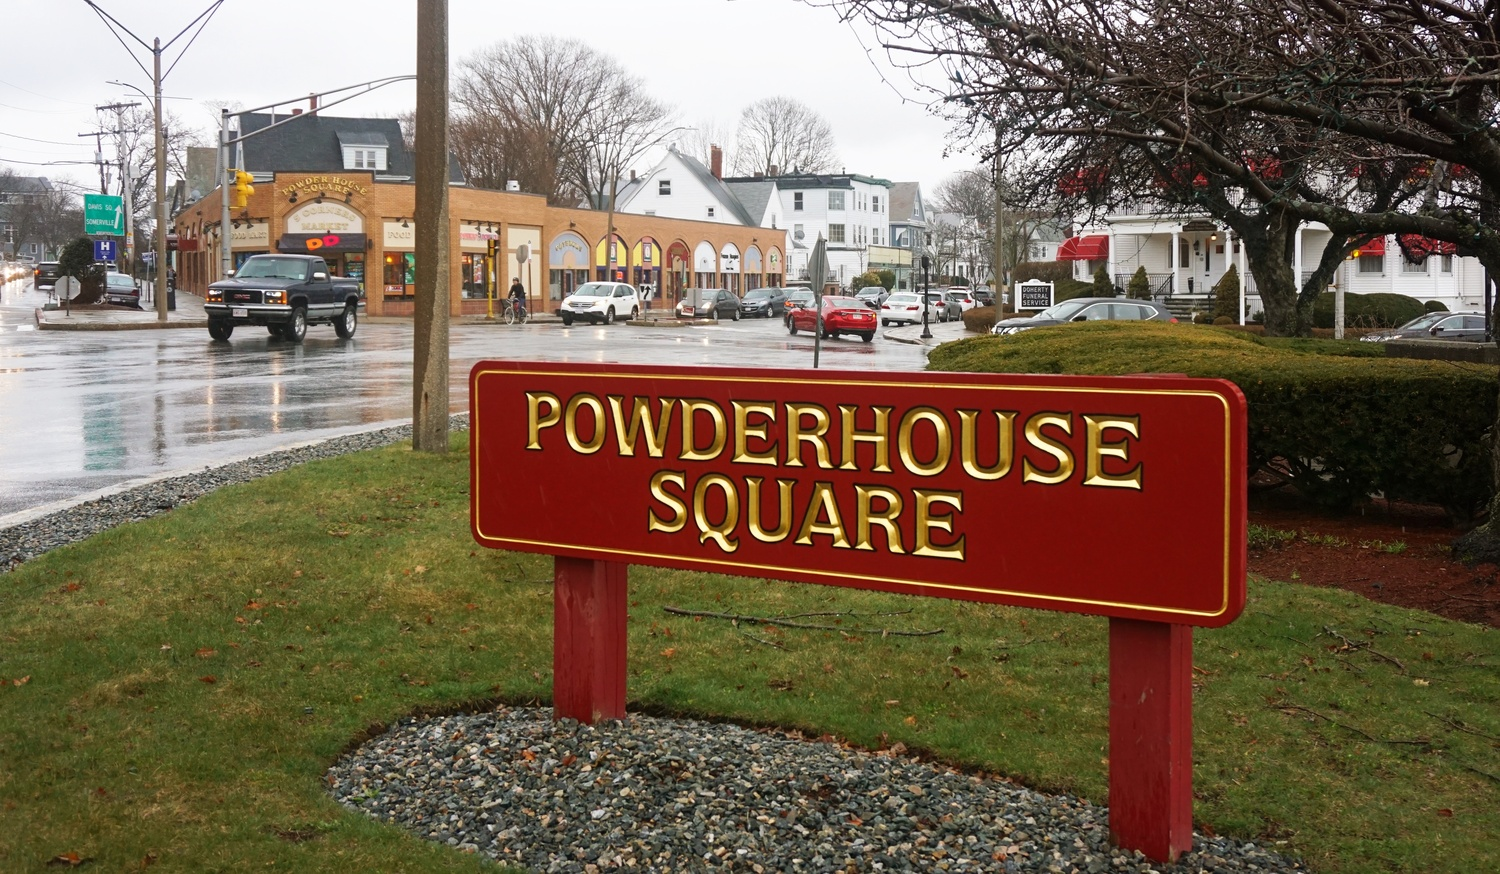 Powderhouse Square is located in Somerville, near Tufts University.